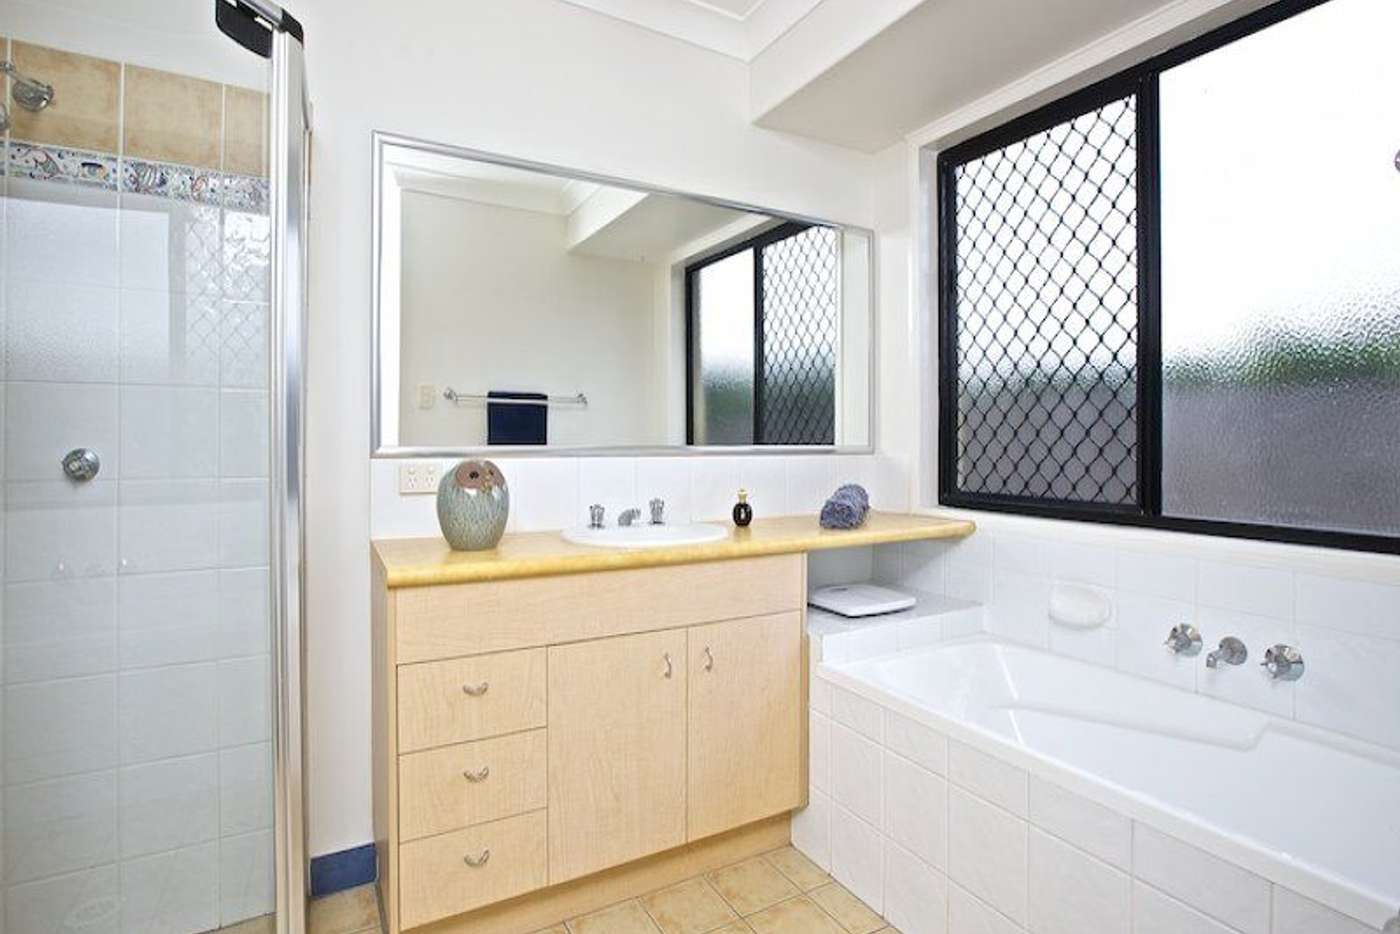 Seventh view of Homely house listing, 35 Ormeau Ridge Road, Ormeau Hills QLD 4208